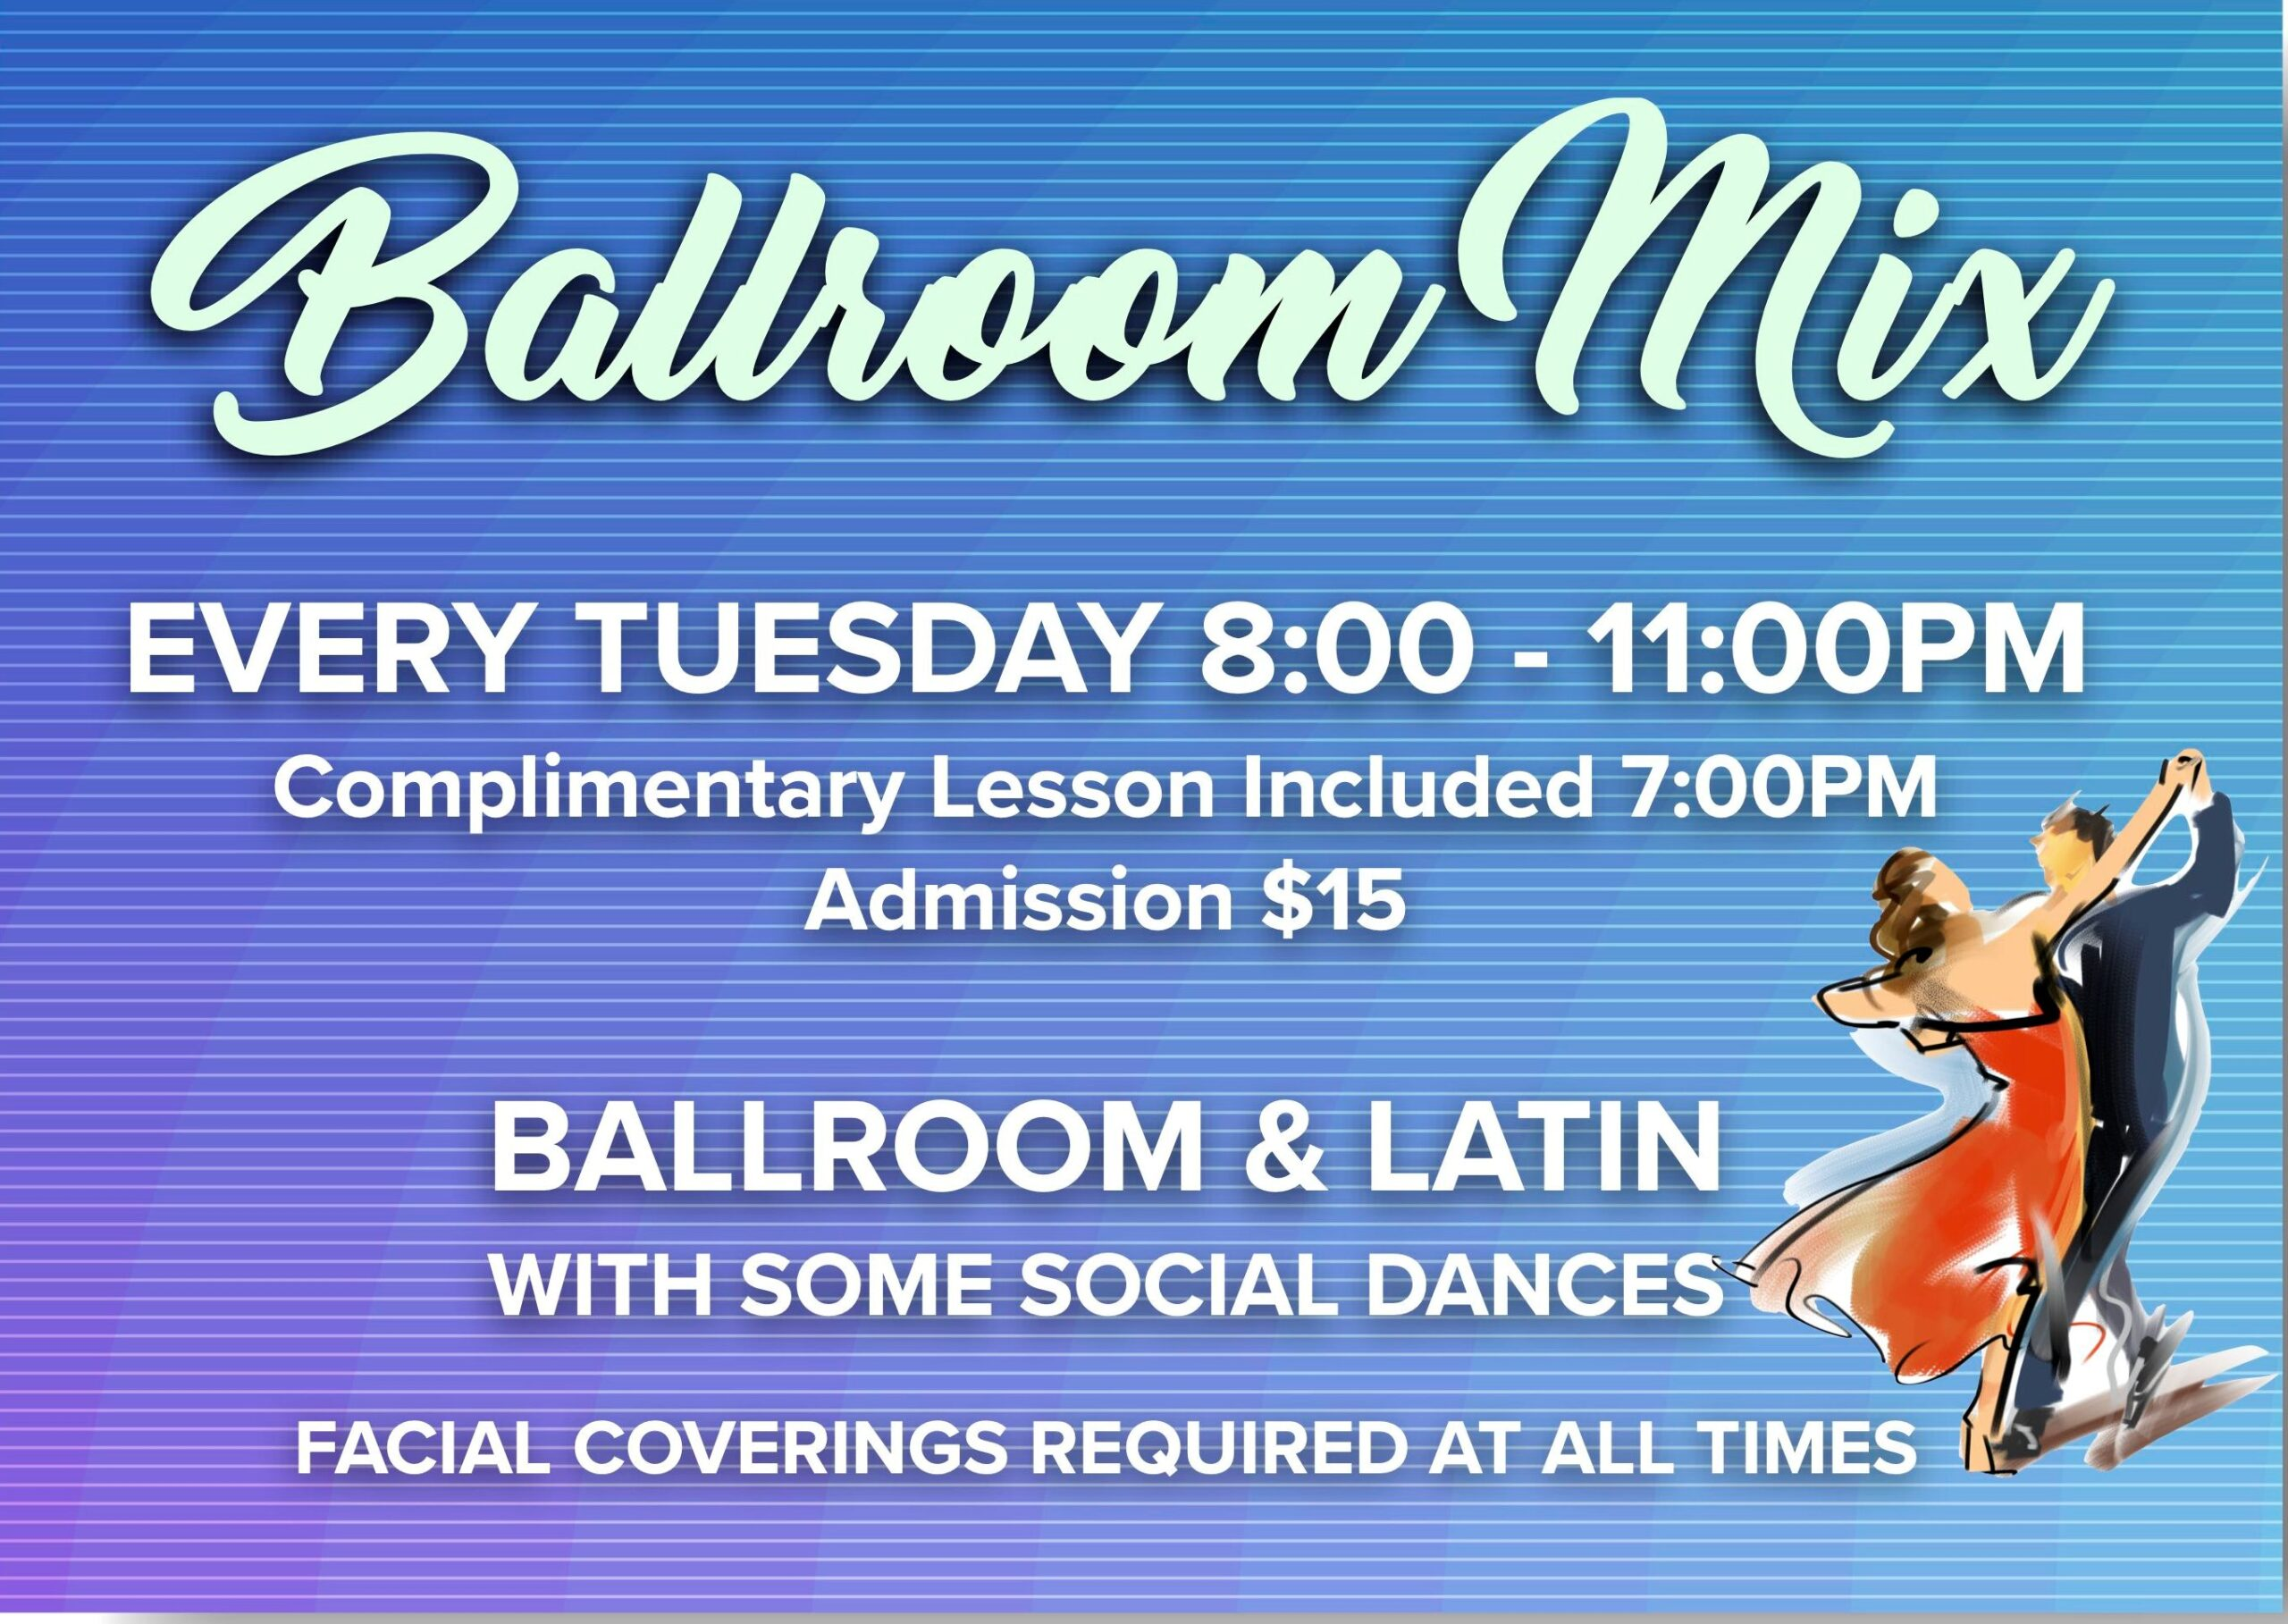 Ballroom Mix Every Tuesday Night at Goldcoast Ballroom!